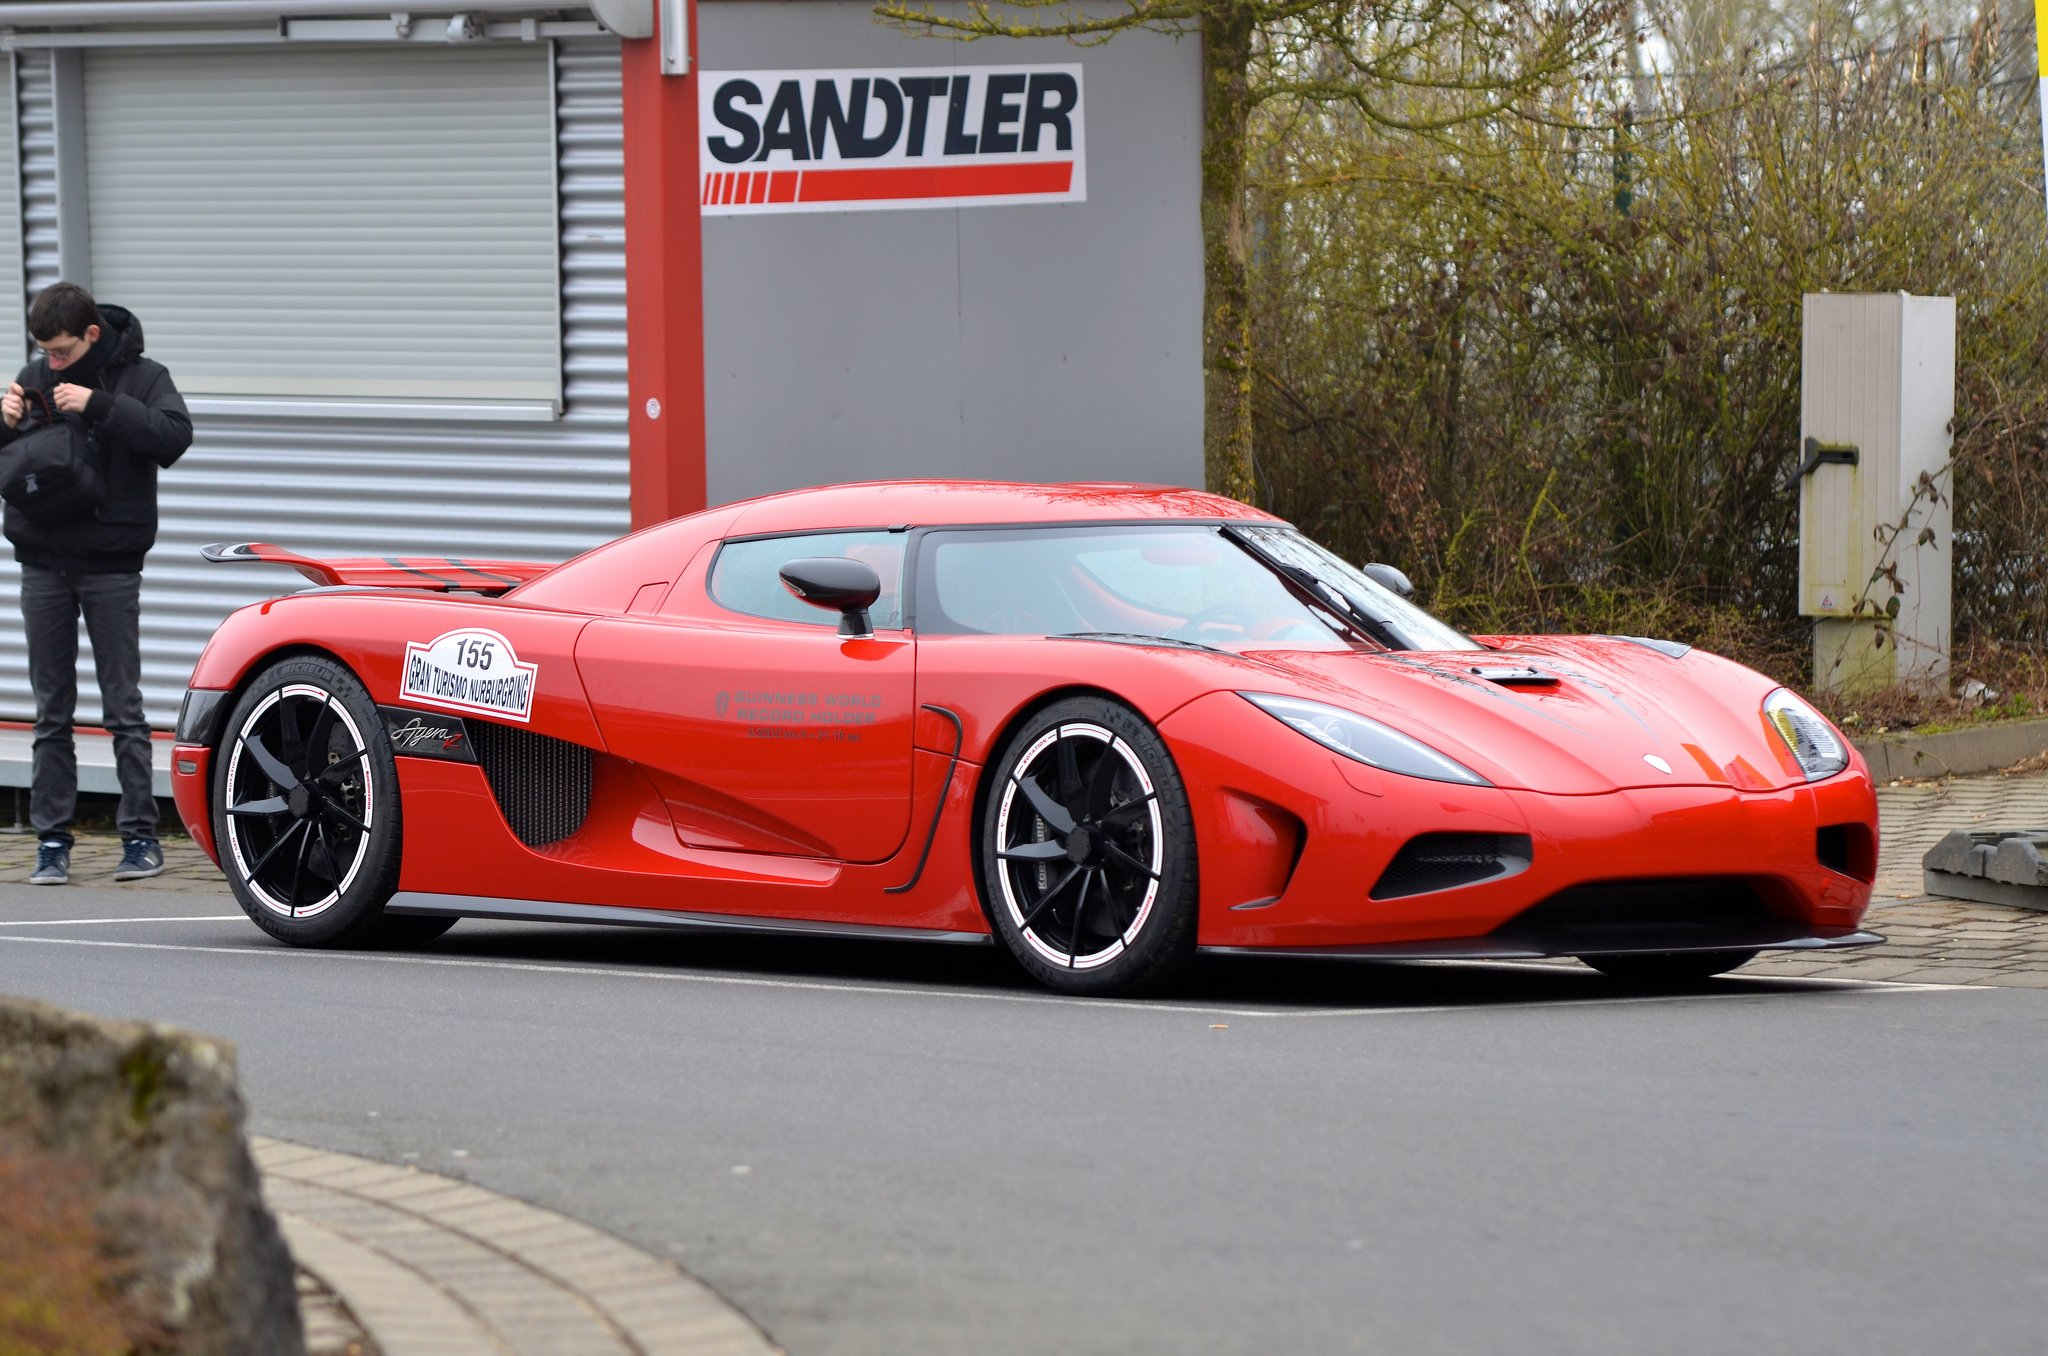 2013 agera r koenigsegg supercar supercars red rouge rosso